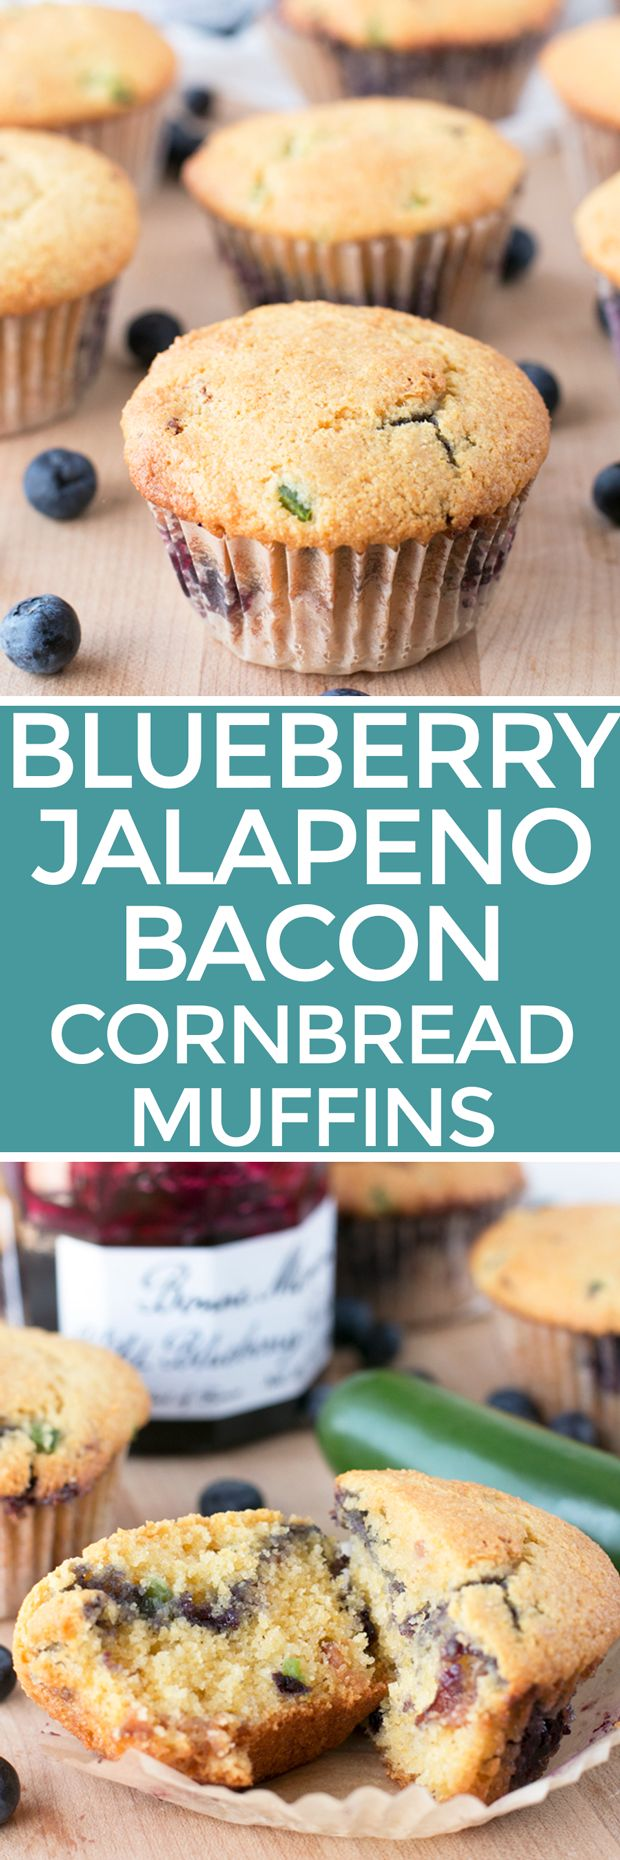 Blueberry Jalapeno Bacon Cornbread Muffins – Cake 'n Knife